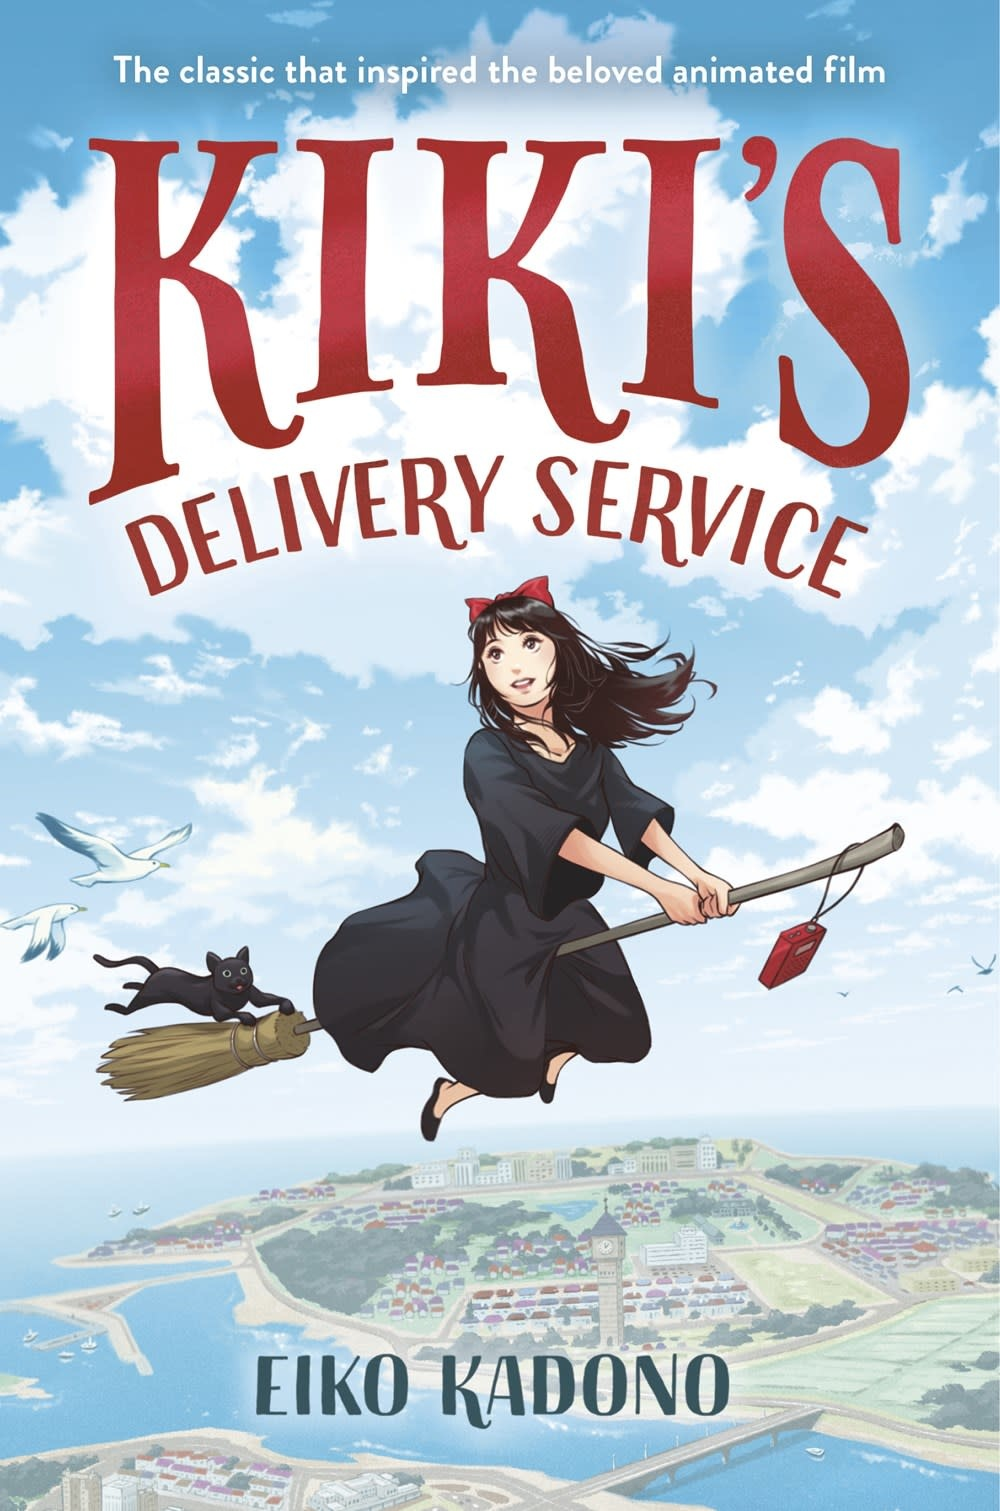 Delacorte Books for Young Readers Kiki's Delivery Service